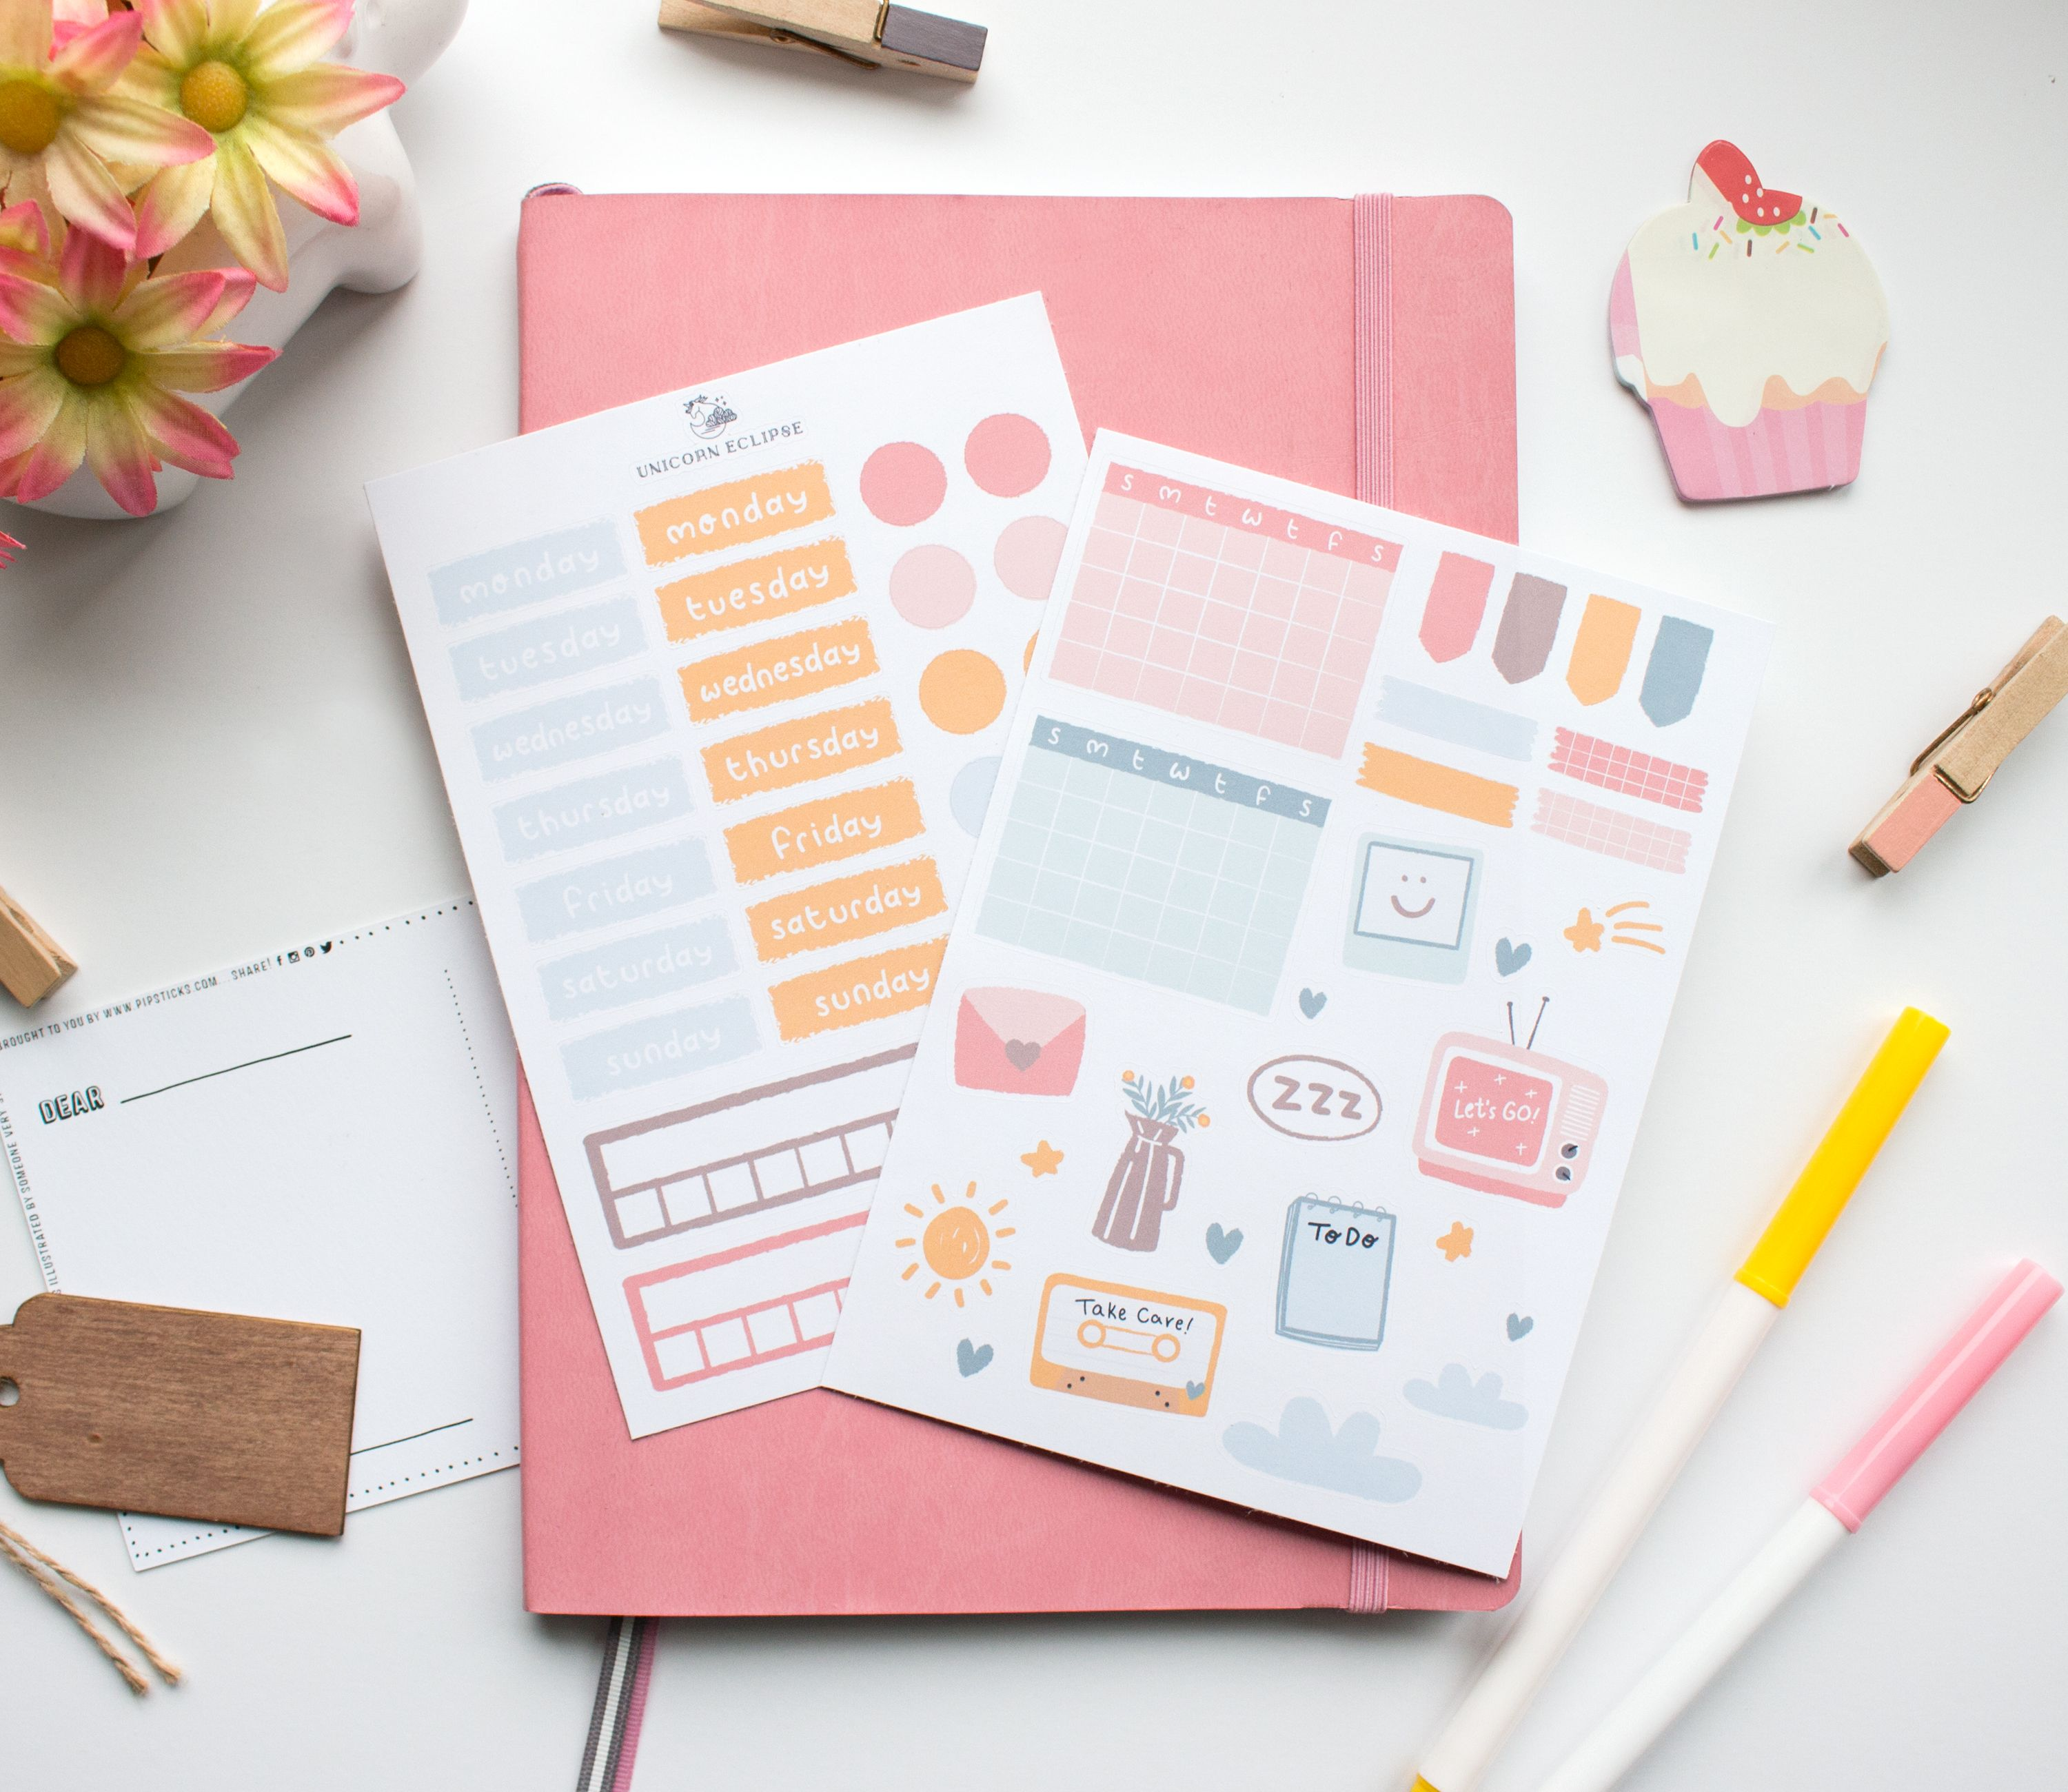 Fashion Student Stickers Watercolor Stickers Bullet Journal Agenda 2021 Organization Scrapbook Supplies Stationery Material